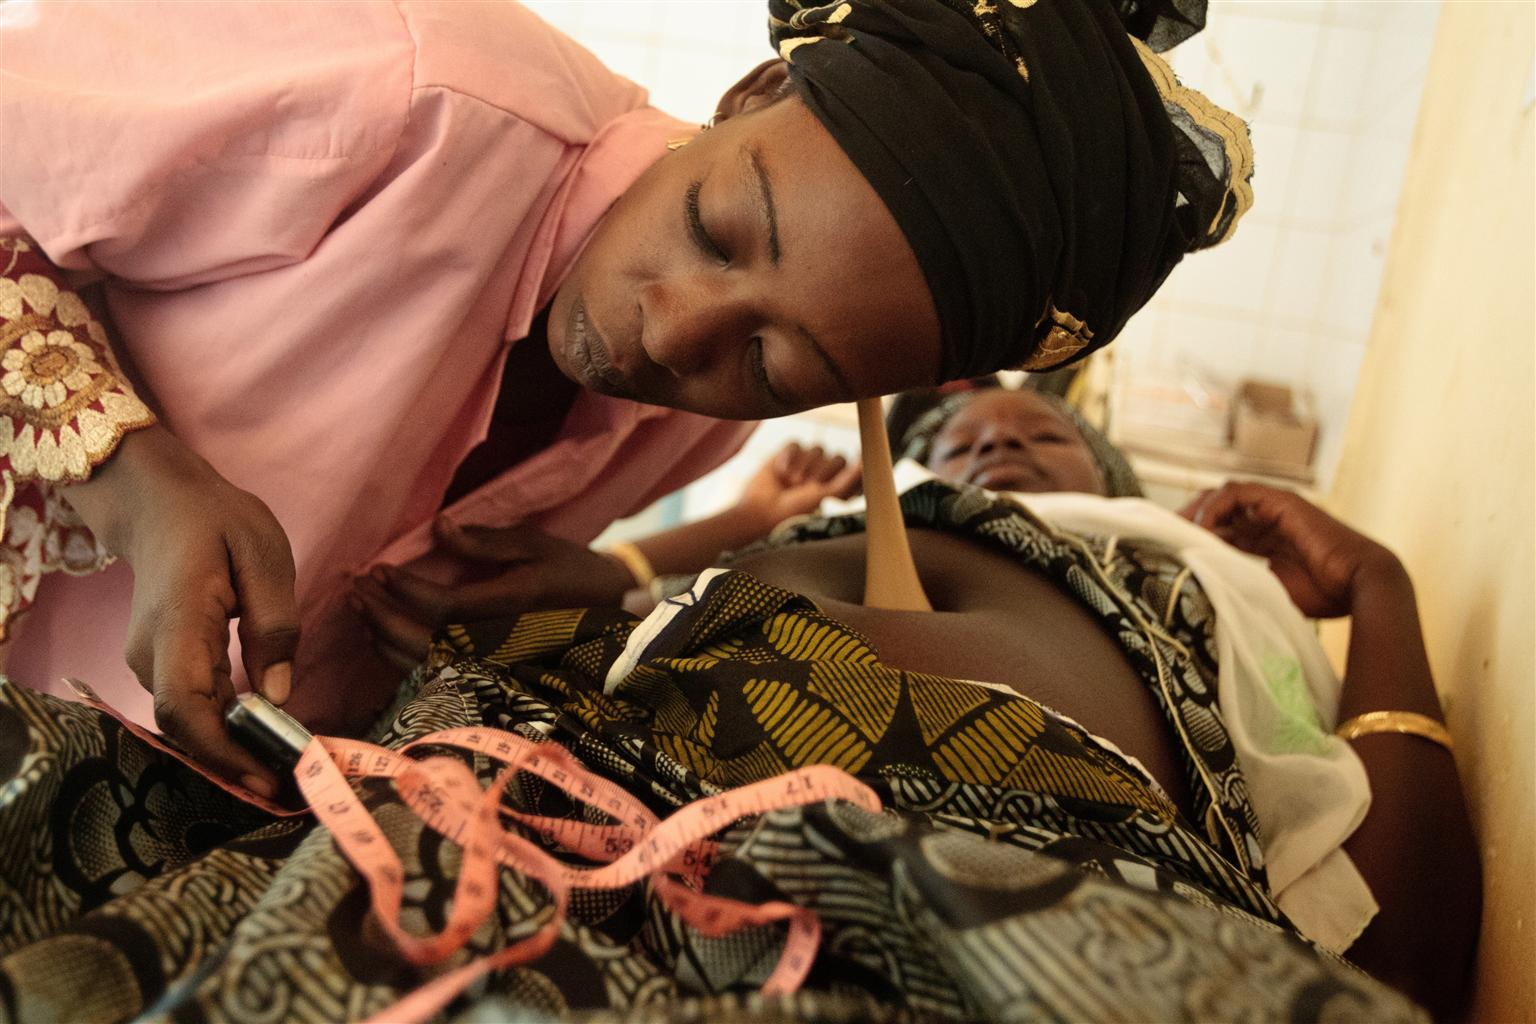 © UNICEF/NYHQ2012-0329/OLIVIER ASSELIN